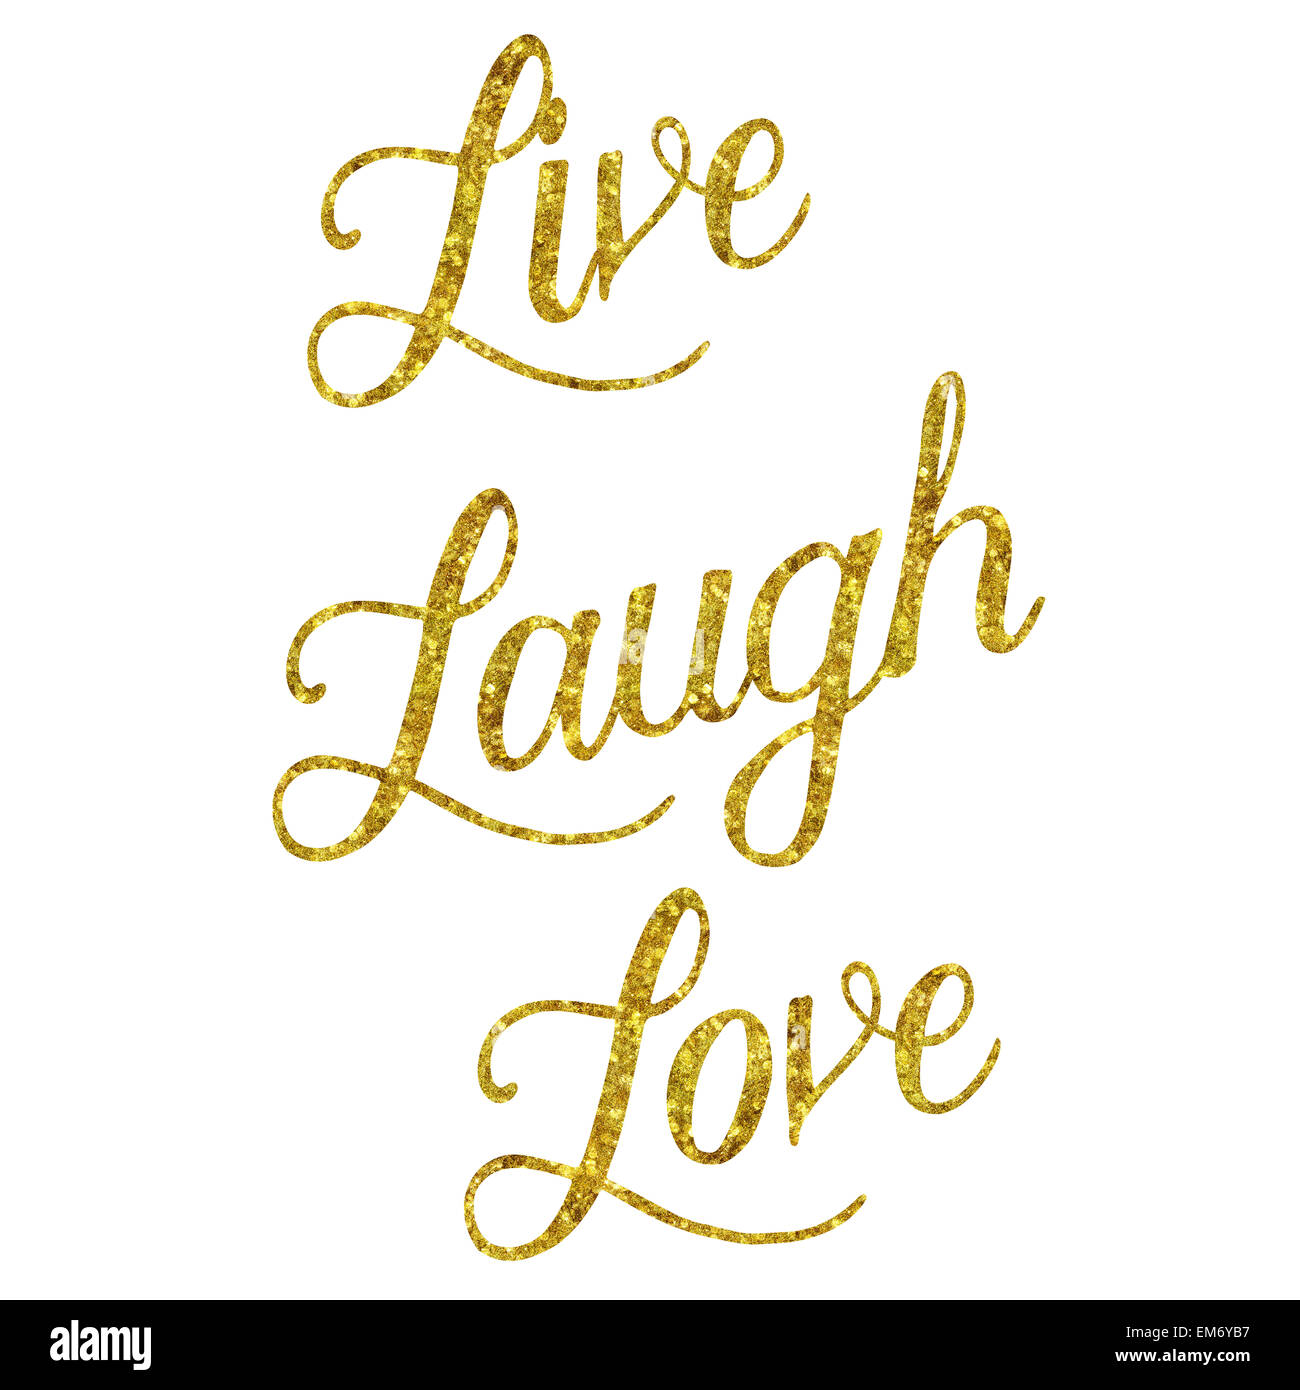 Glittery Gold Faux Foil Metallic Inspirational Live Laugh ...